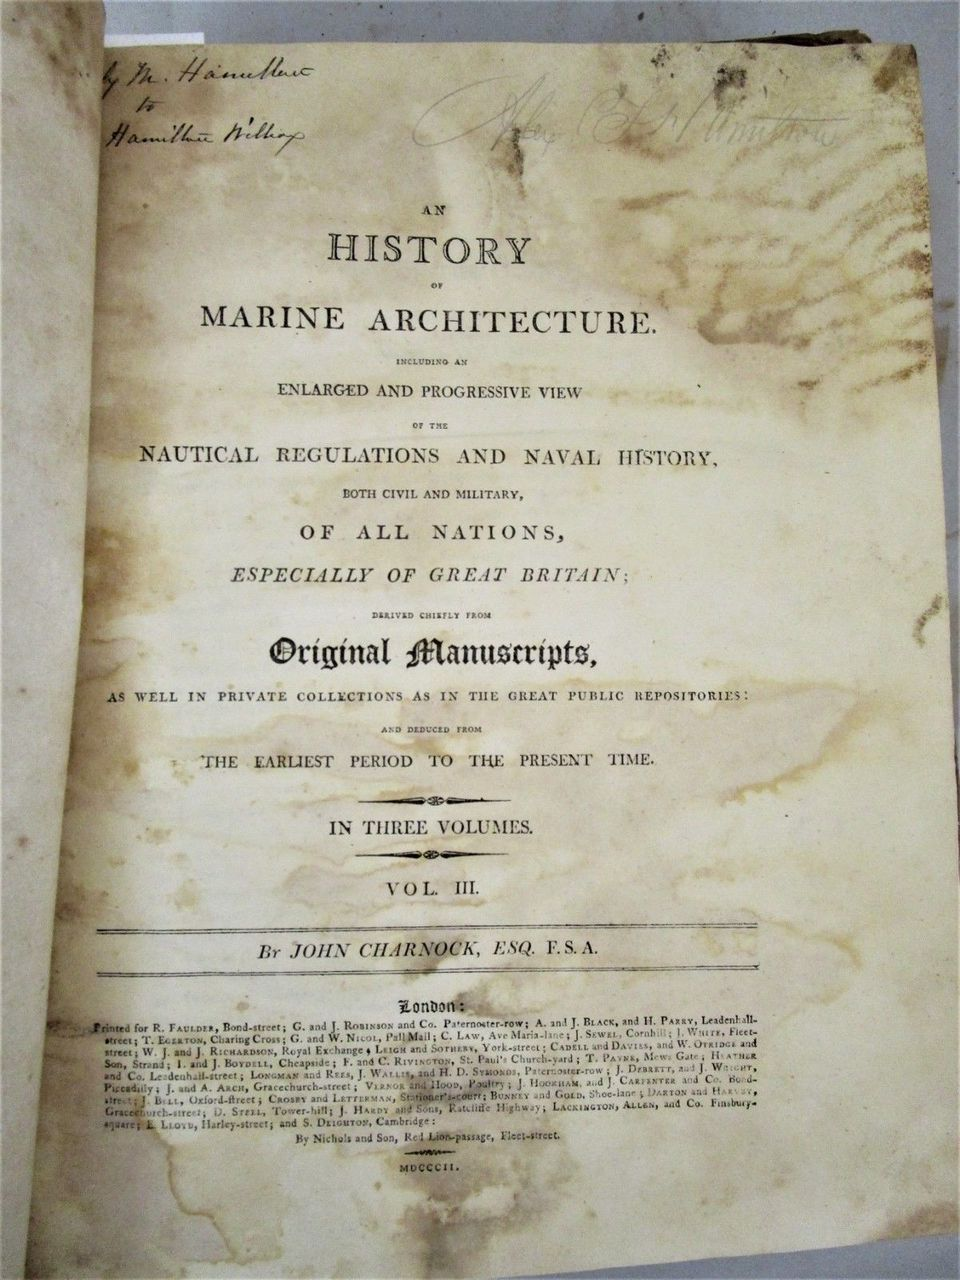 AN HISTORY OF MARINE ARCHITECTURE, by John Charnock - 1801 [1st Ed, 3 Vols]